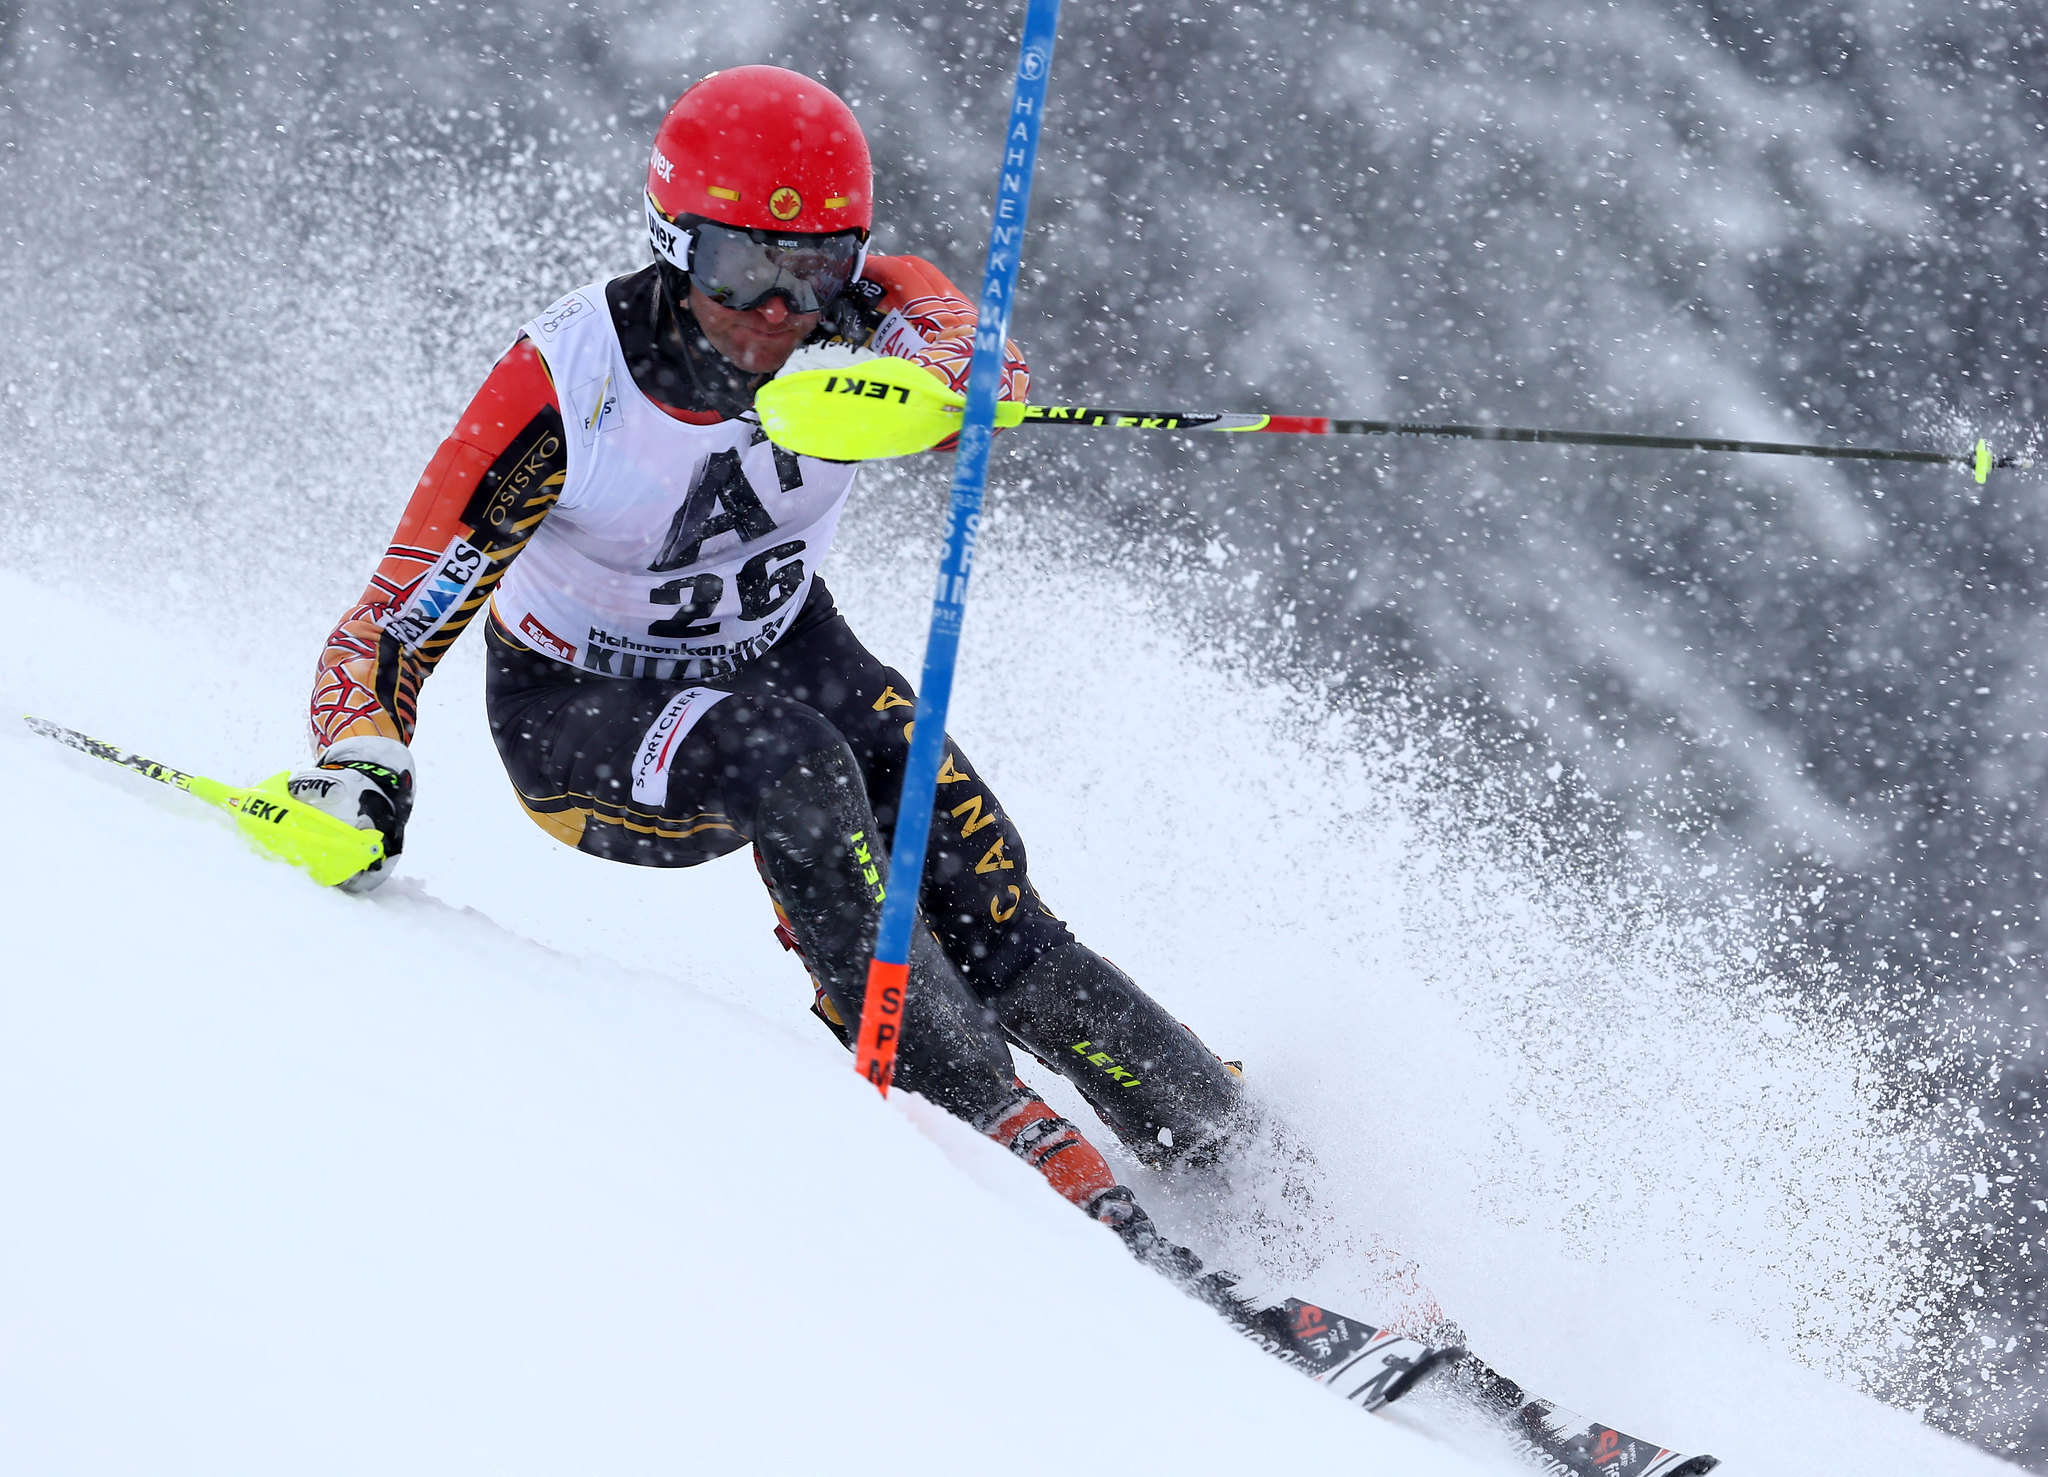 Janyk in action during the slalom in Kitzbuehel, AUT